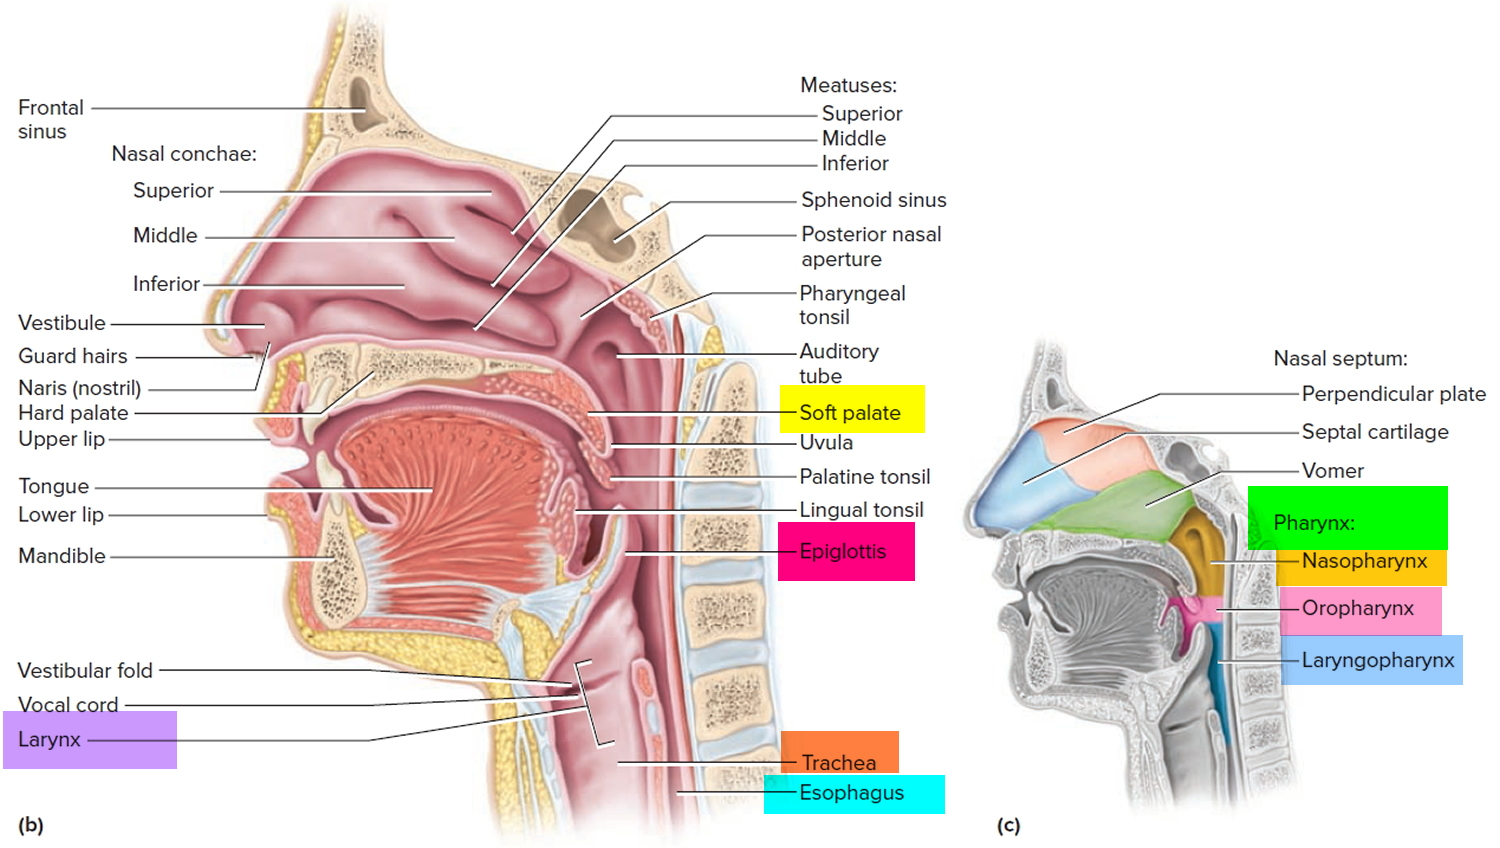 Pharynx - Anatomy & Function in Respiratory System